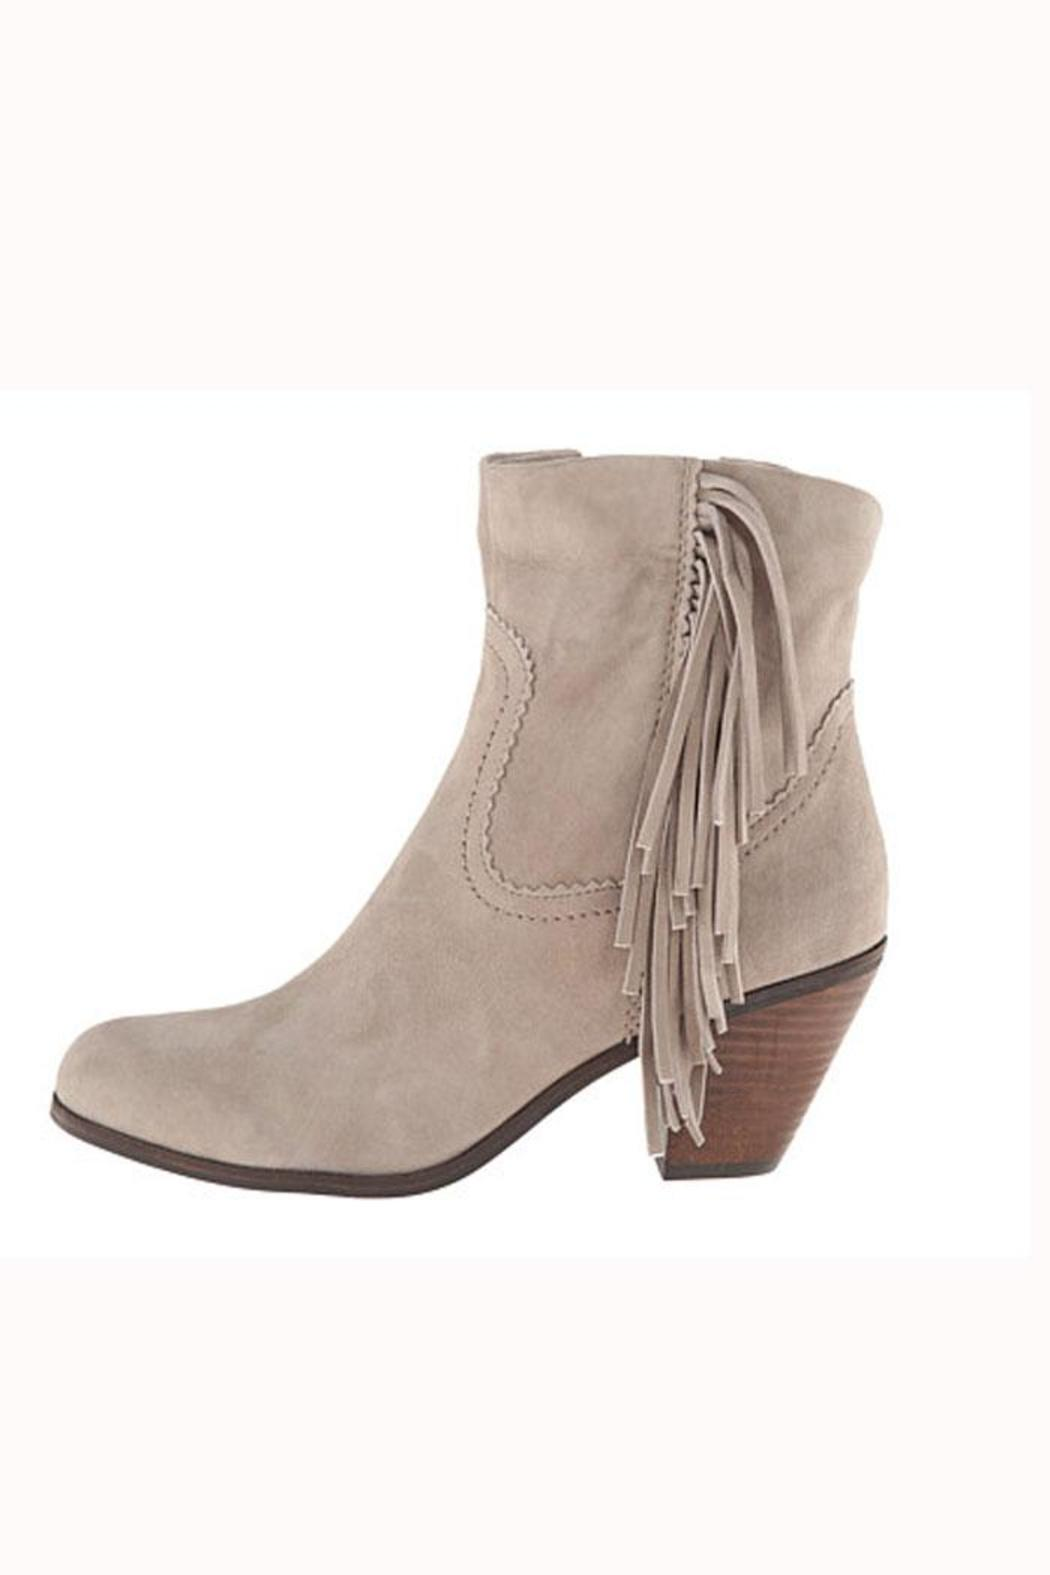 5cca5a8eada3ea Sam Edelman Grey Fringe Bootie from Hudson Valley by Bfree — Shoptiques